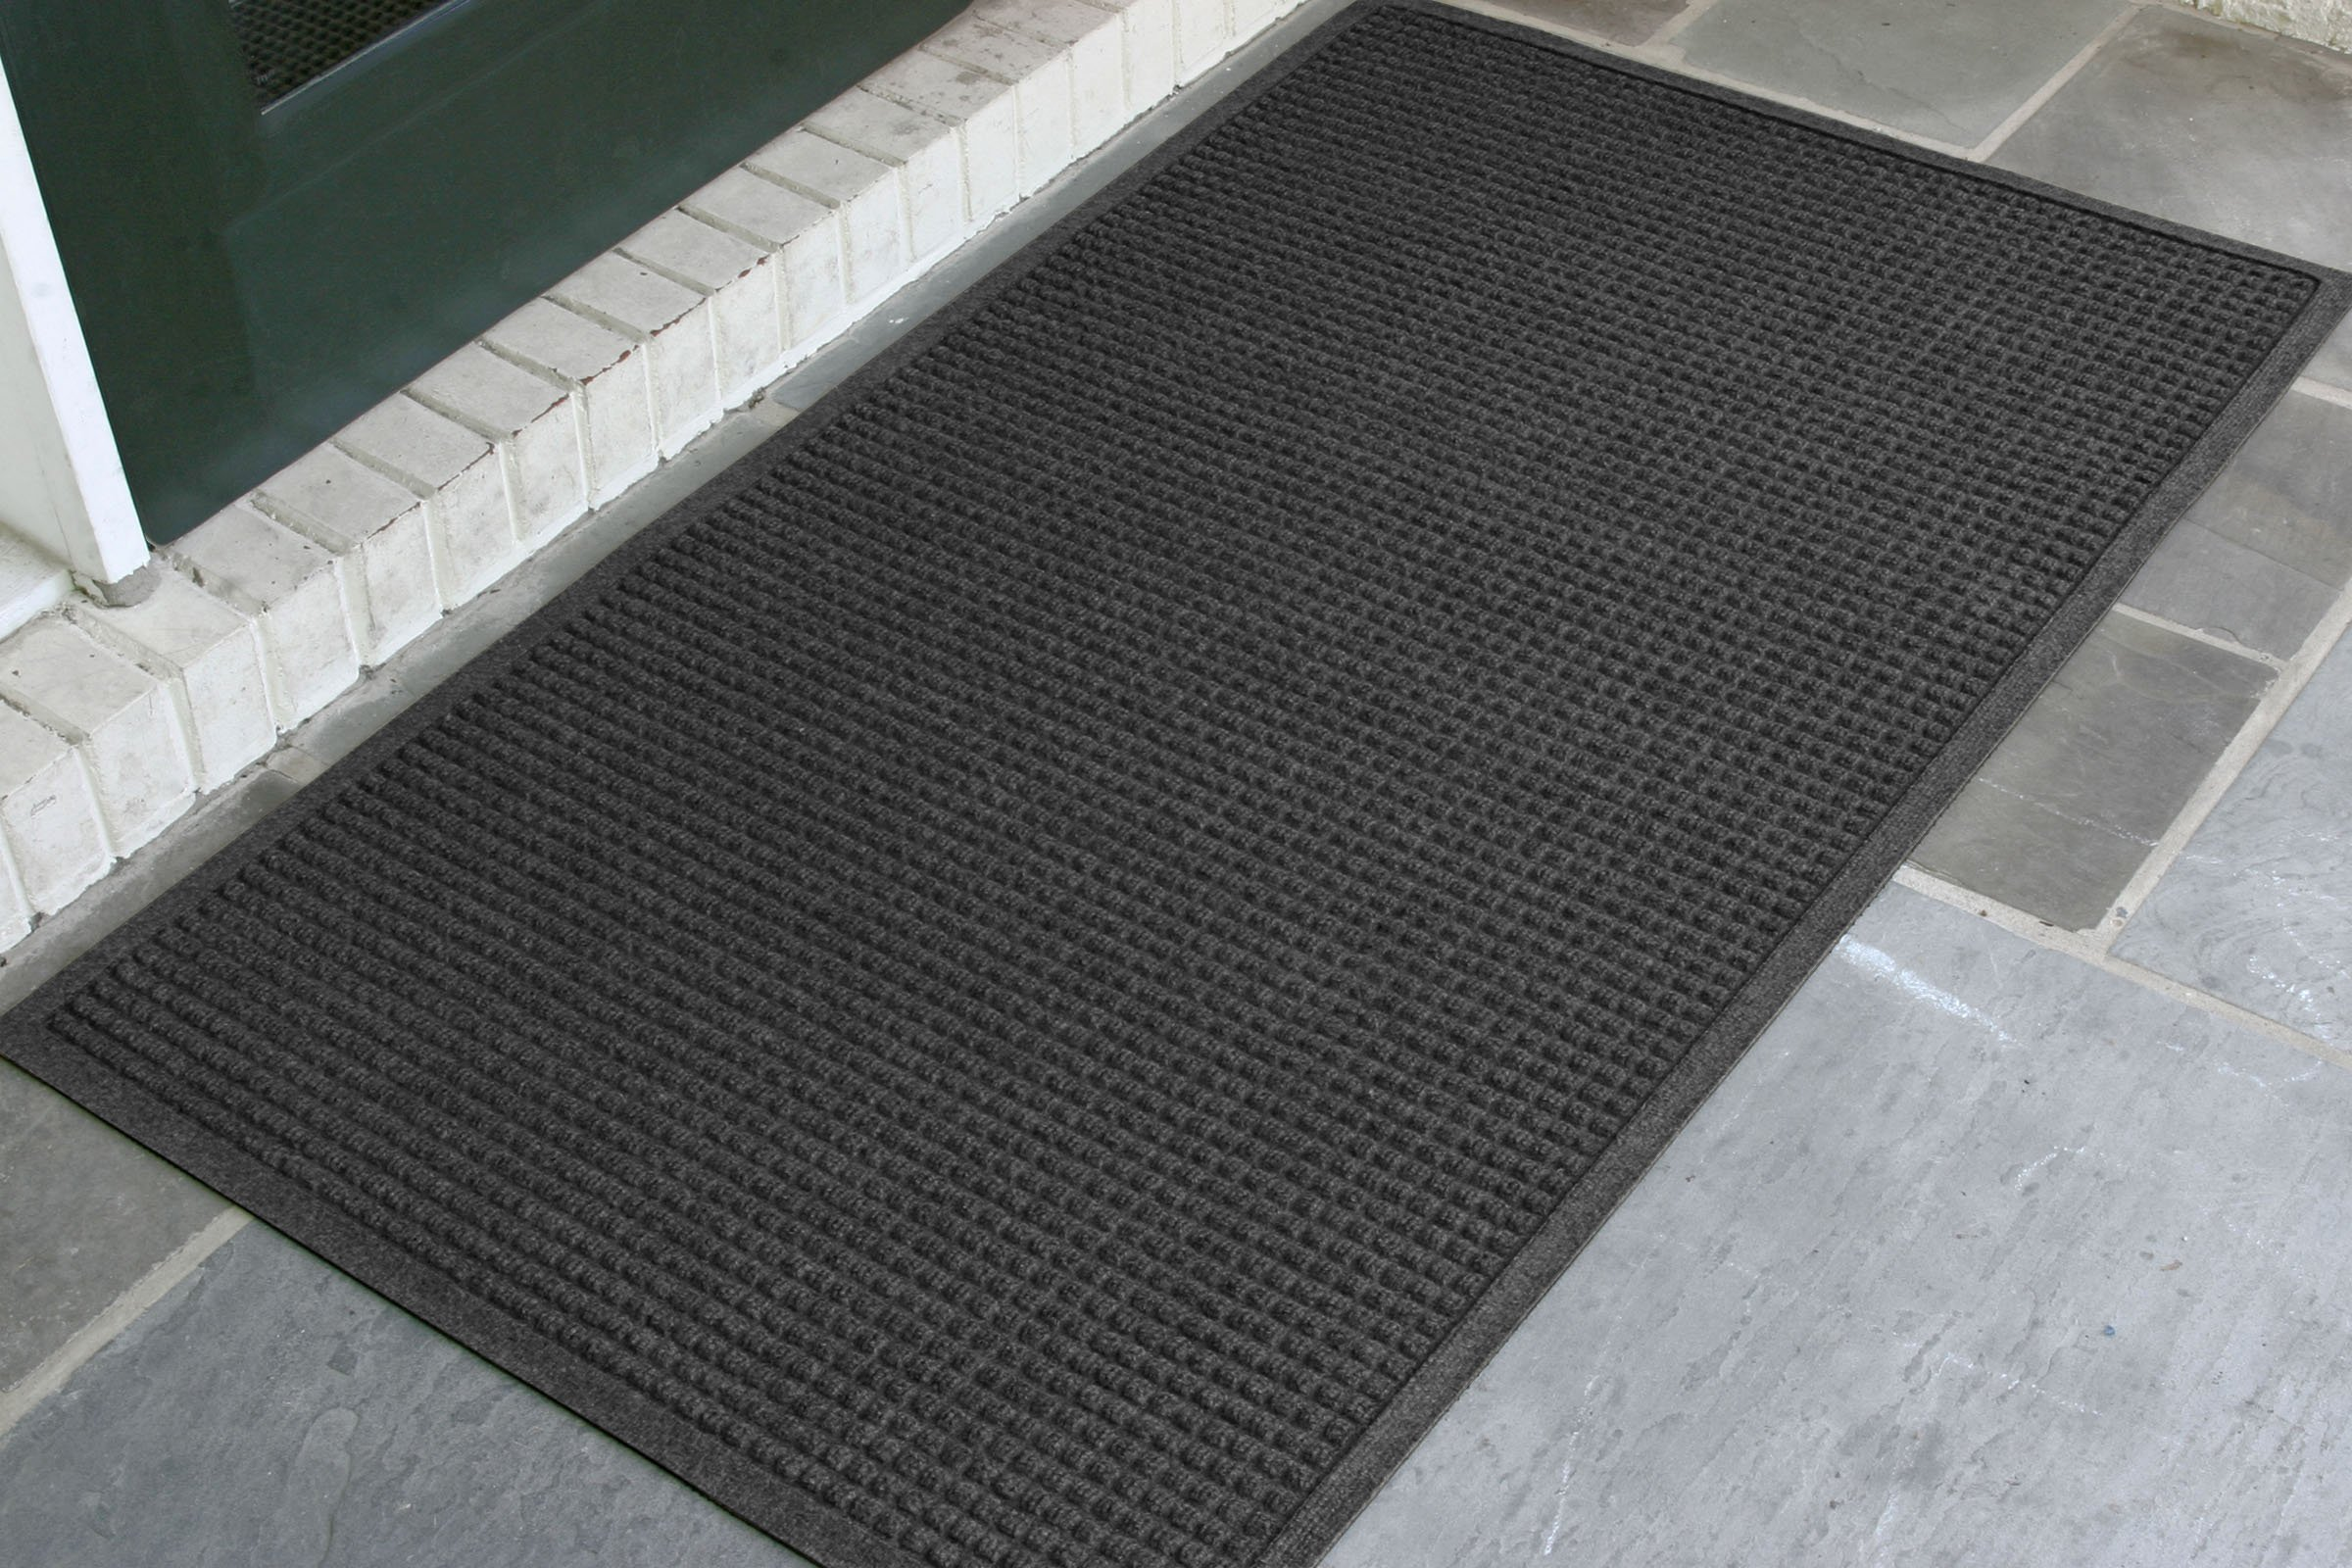 WaterHog Fashion Commercial-Grade Entrance Mat, Indoor/Outdoor Charcoal Floor Mat 5' Length x 3' Width, Charcoal by M+A Matting